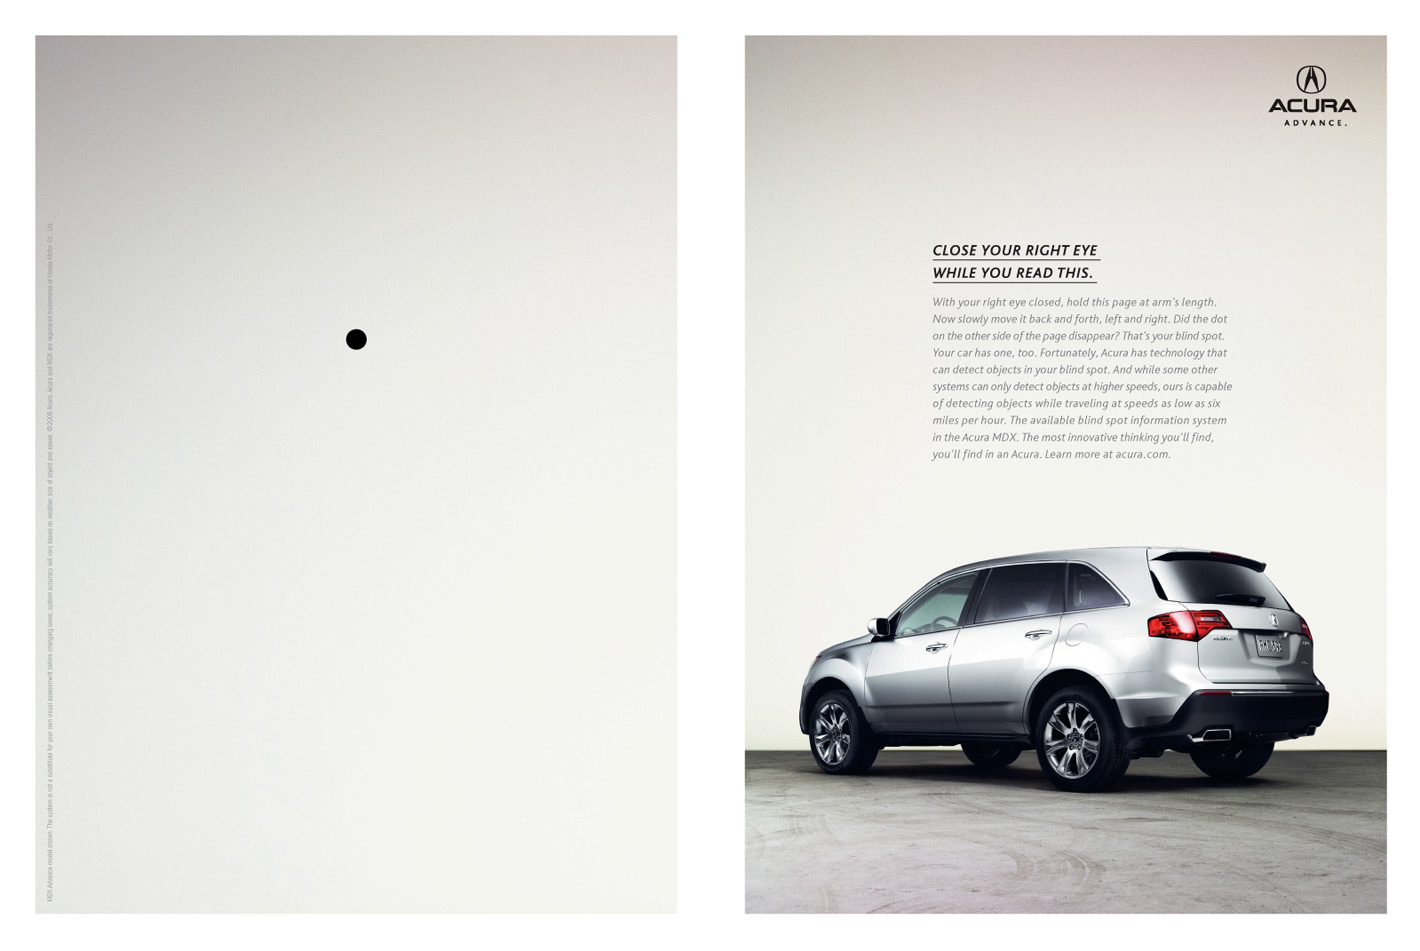 Acura Print Advert By rp&: Blindspot | Ads of the World™ on